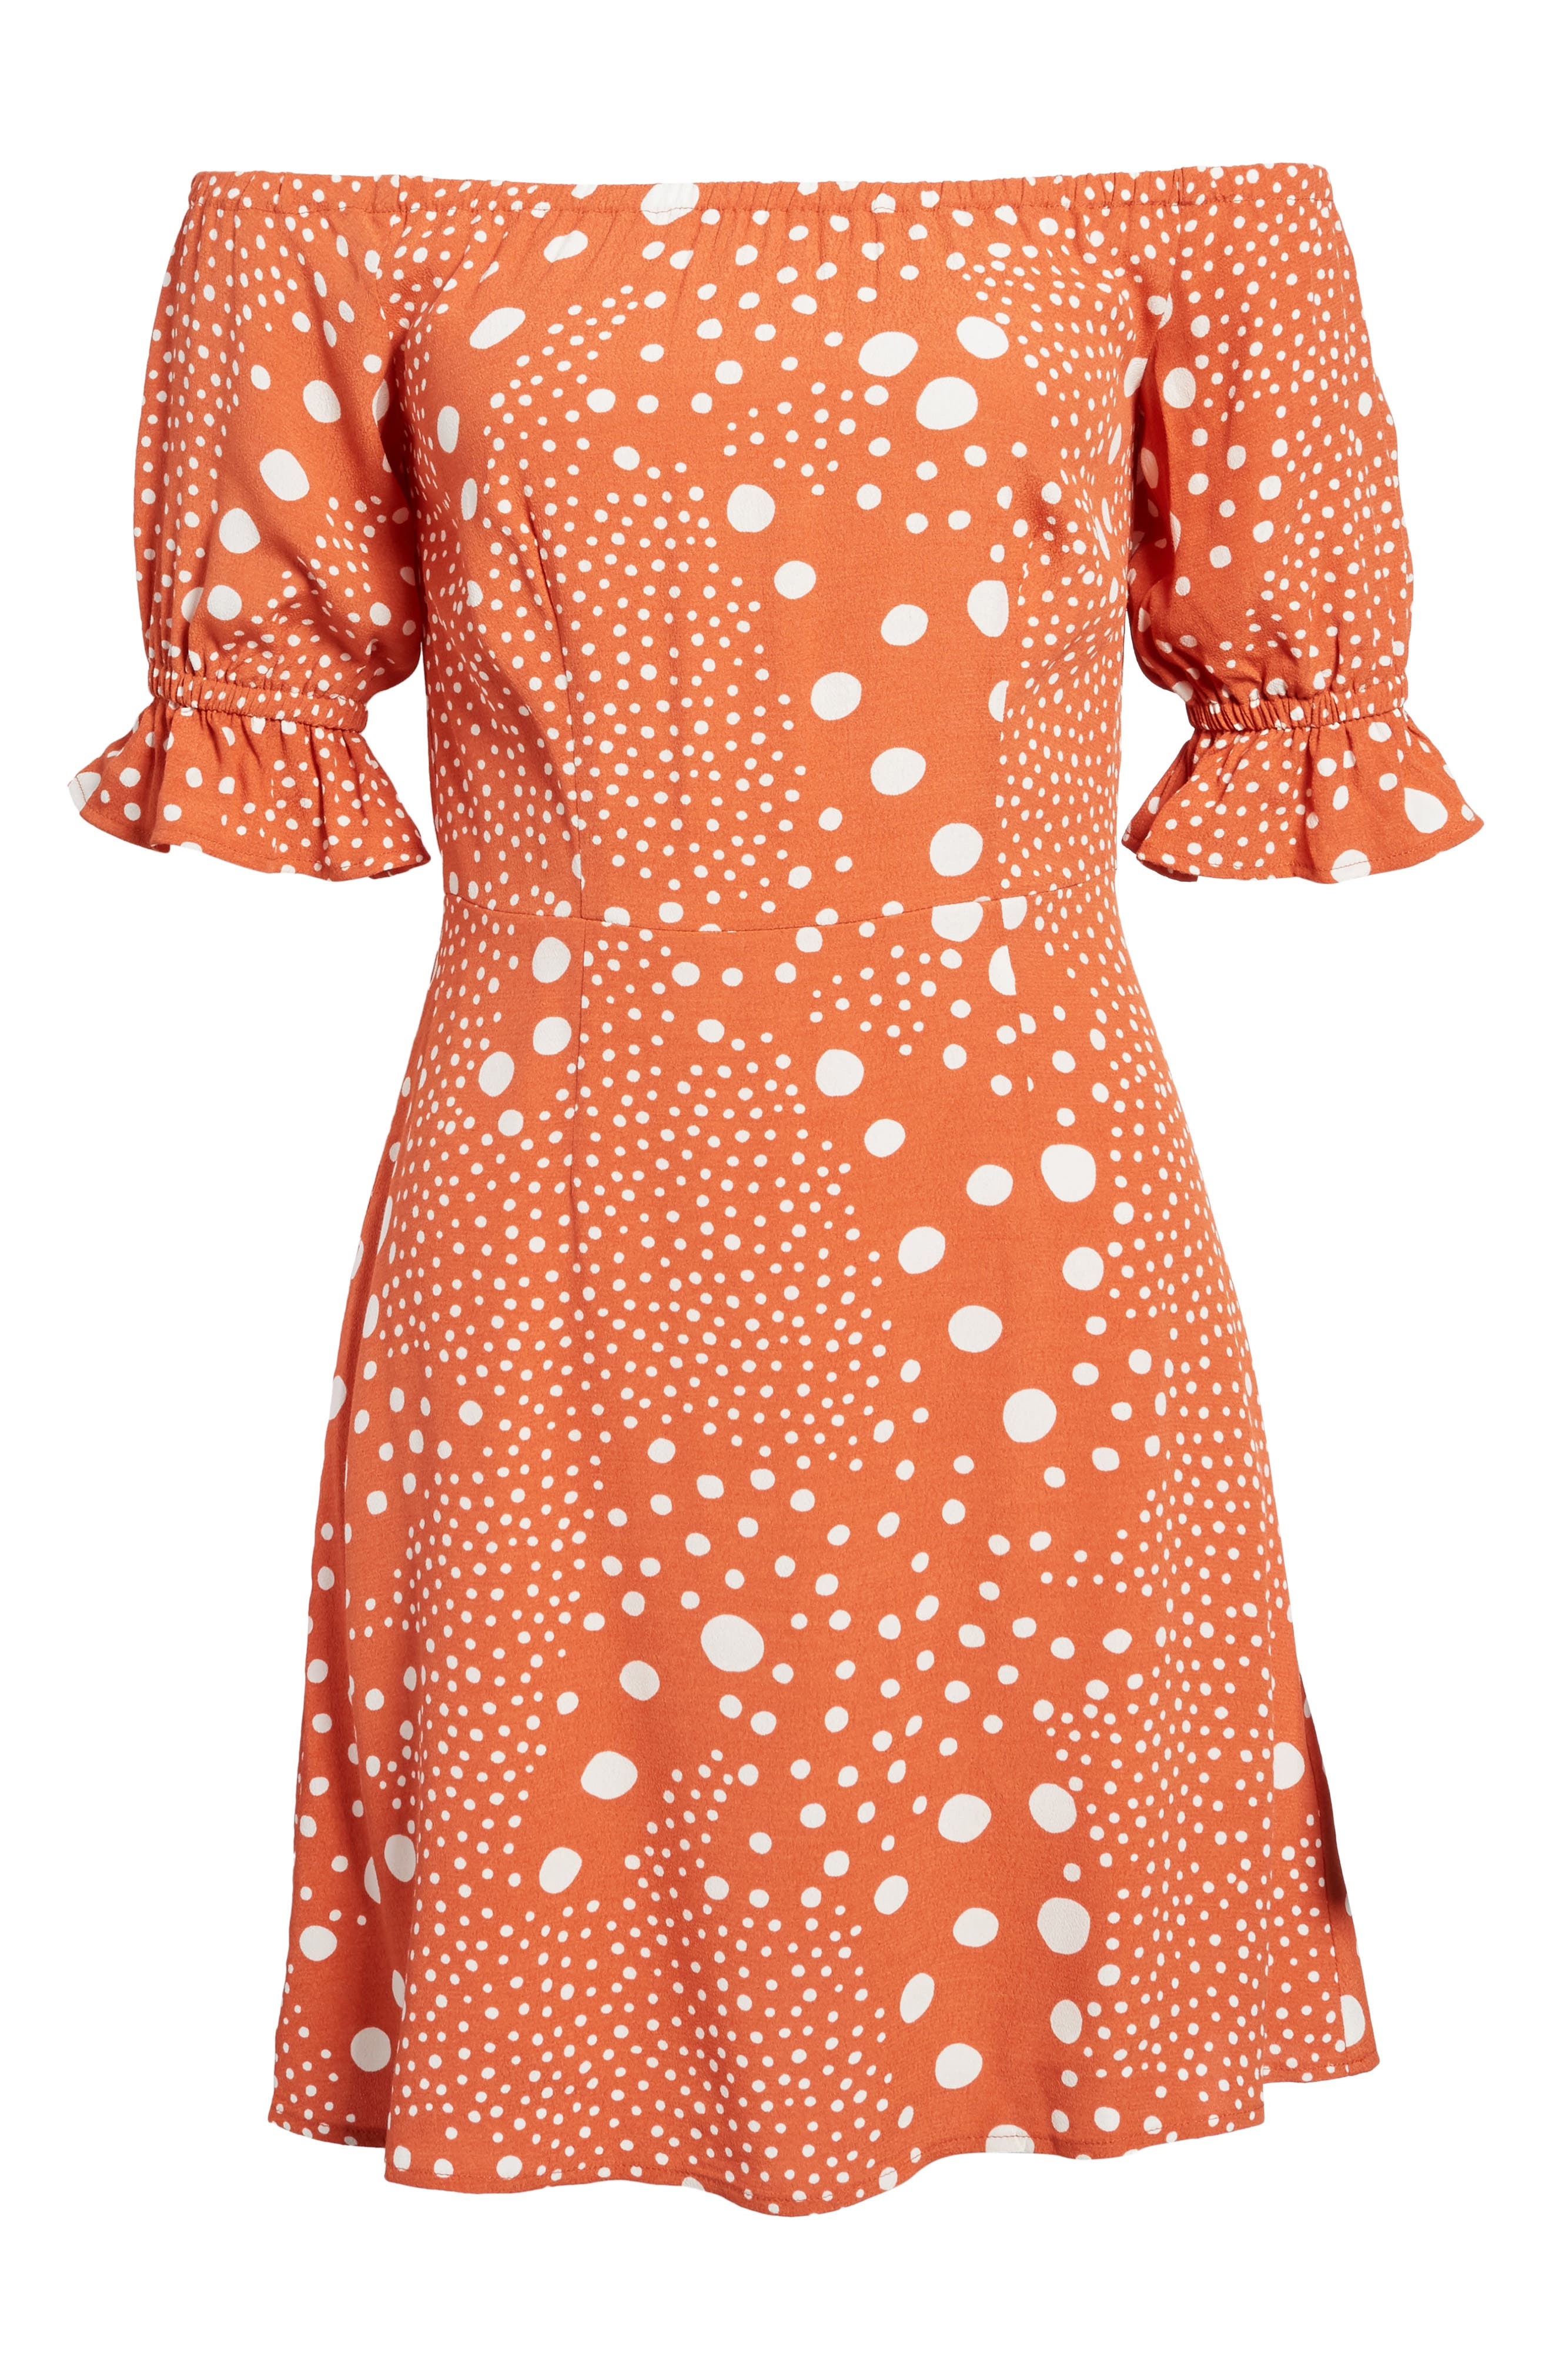 Peppers Polka Dot Off the Shoulder Dress,                             Alternate thumbnail 6, color,                             RUST PEBBLE